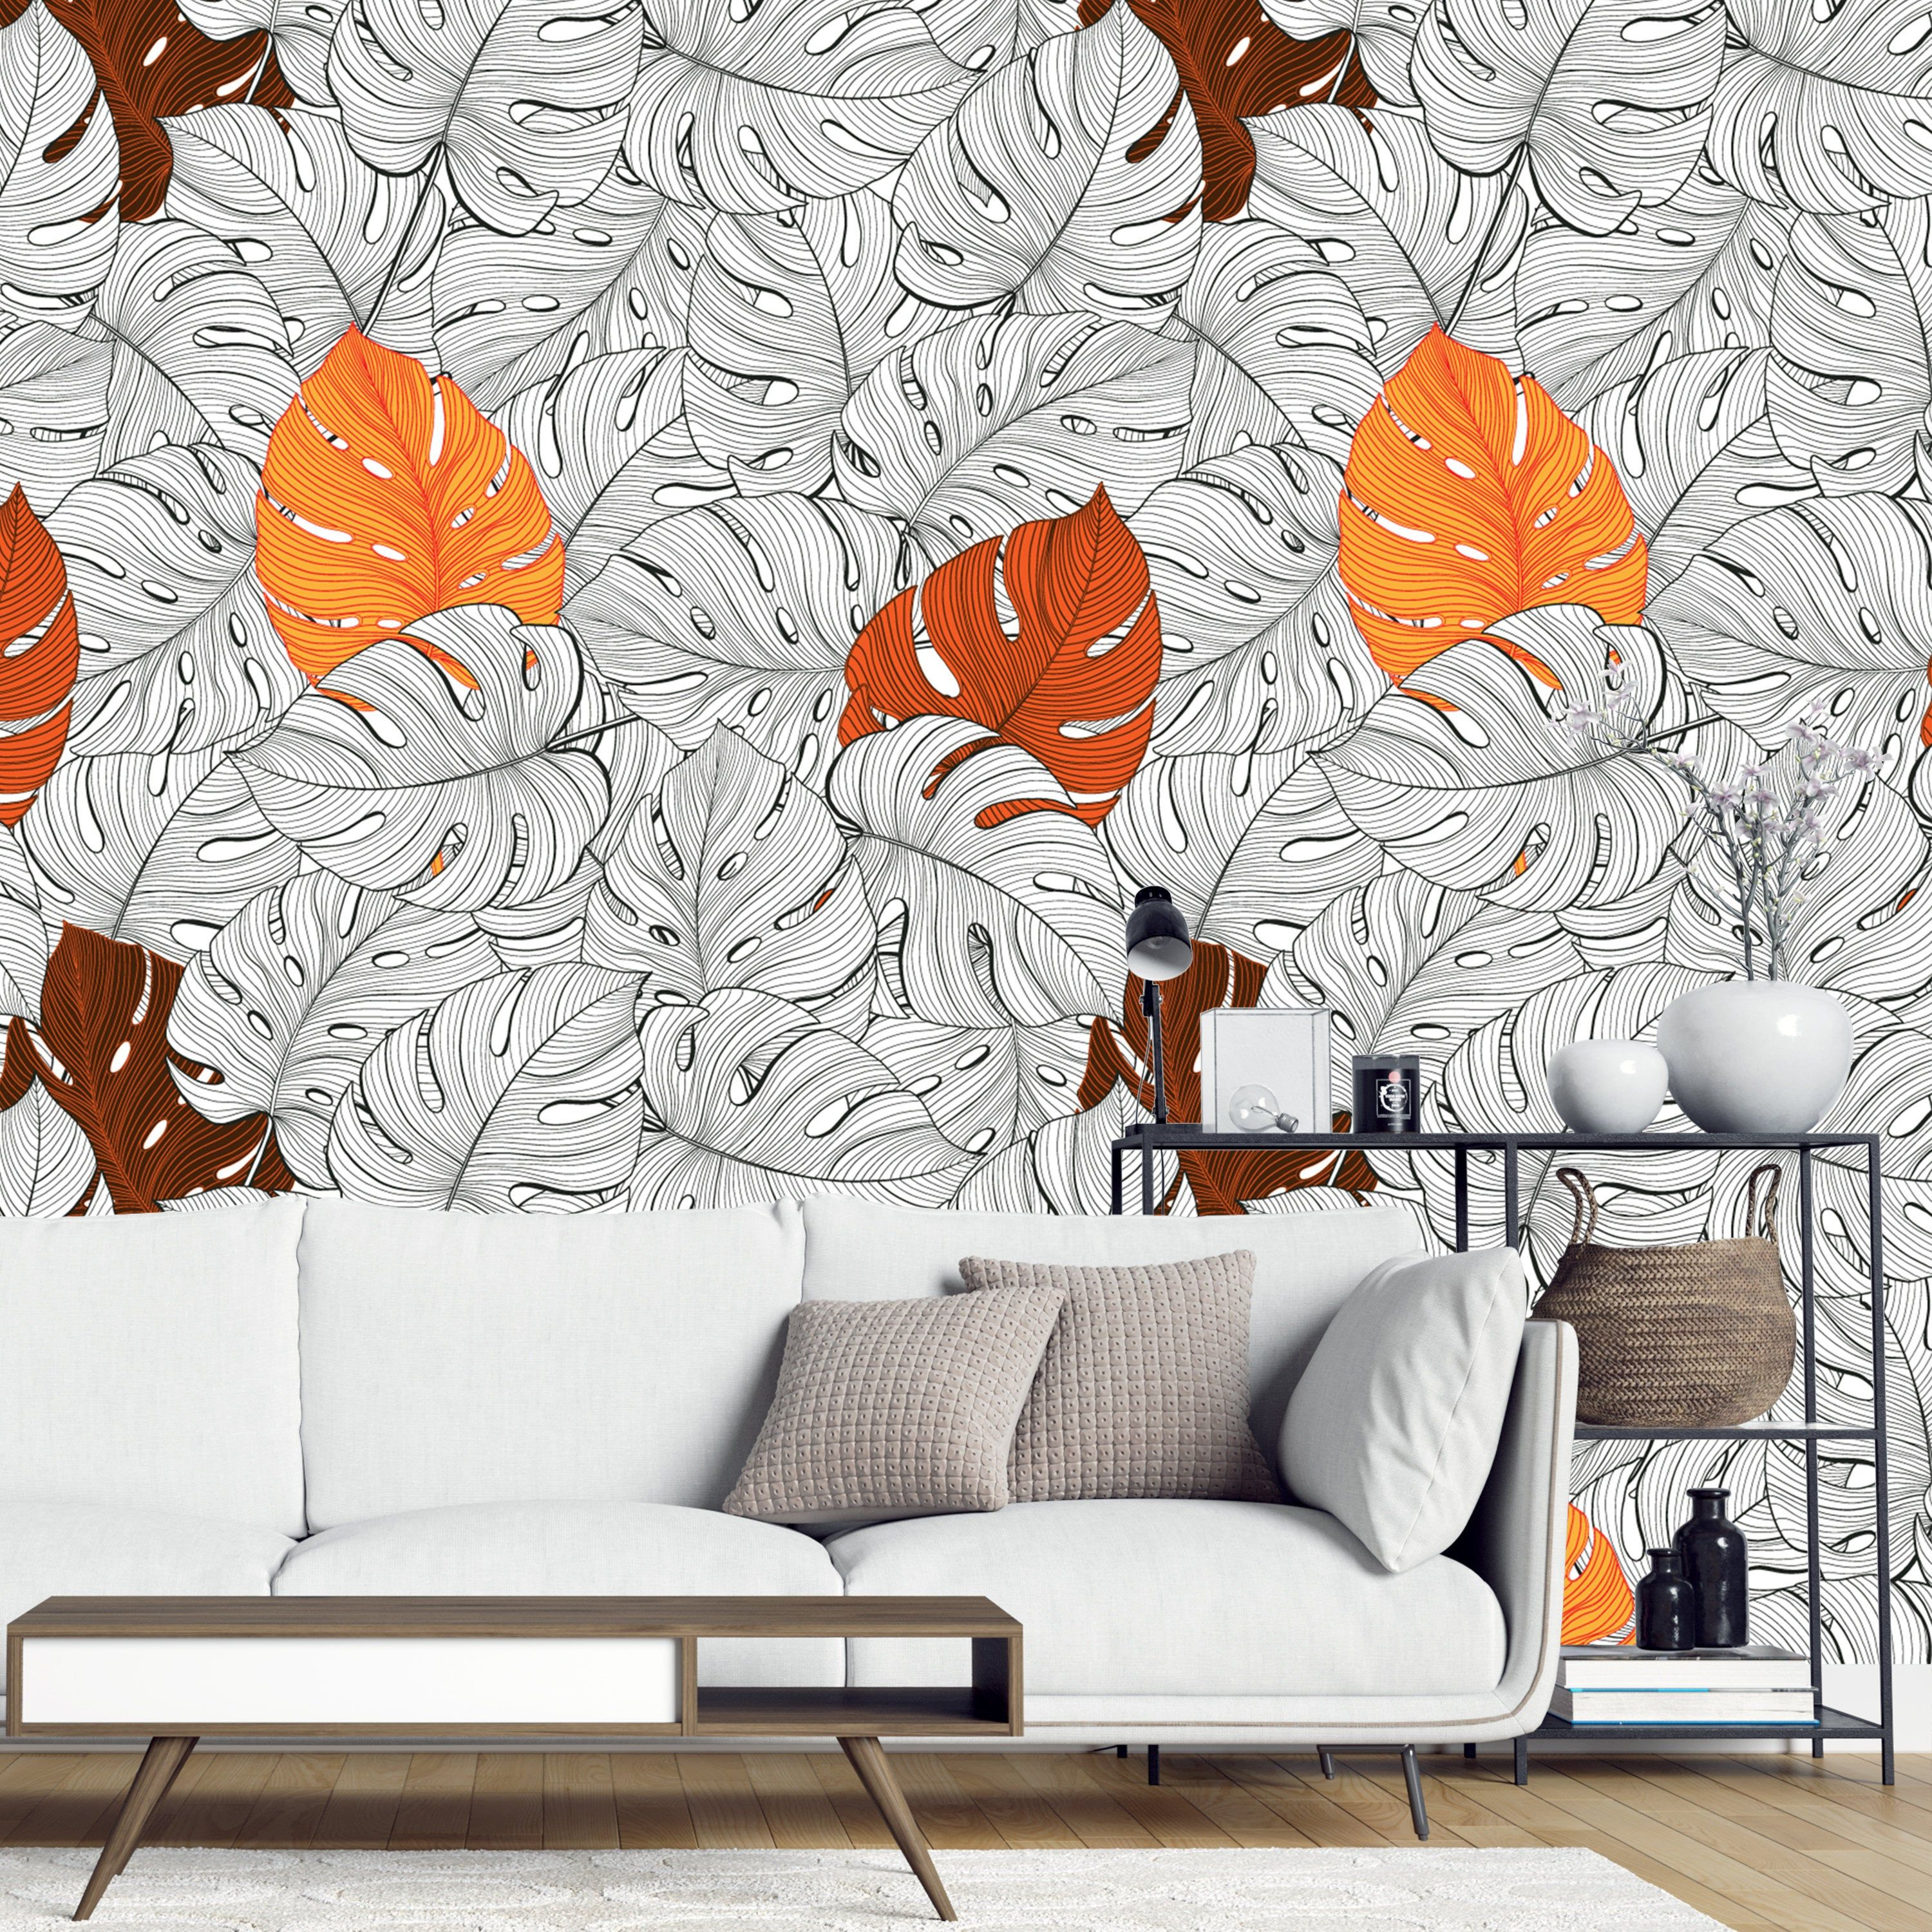 Removable Wallpaper Hand Drawn Autumn Theme Monstera Leaves Etsy Peel And Stick Wallpaper Removable Wallpaper Nursery Wallpaper